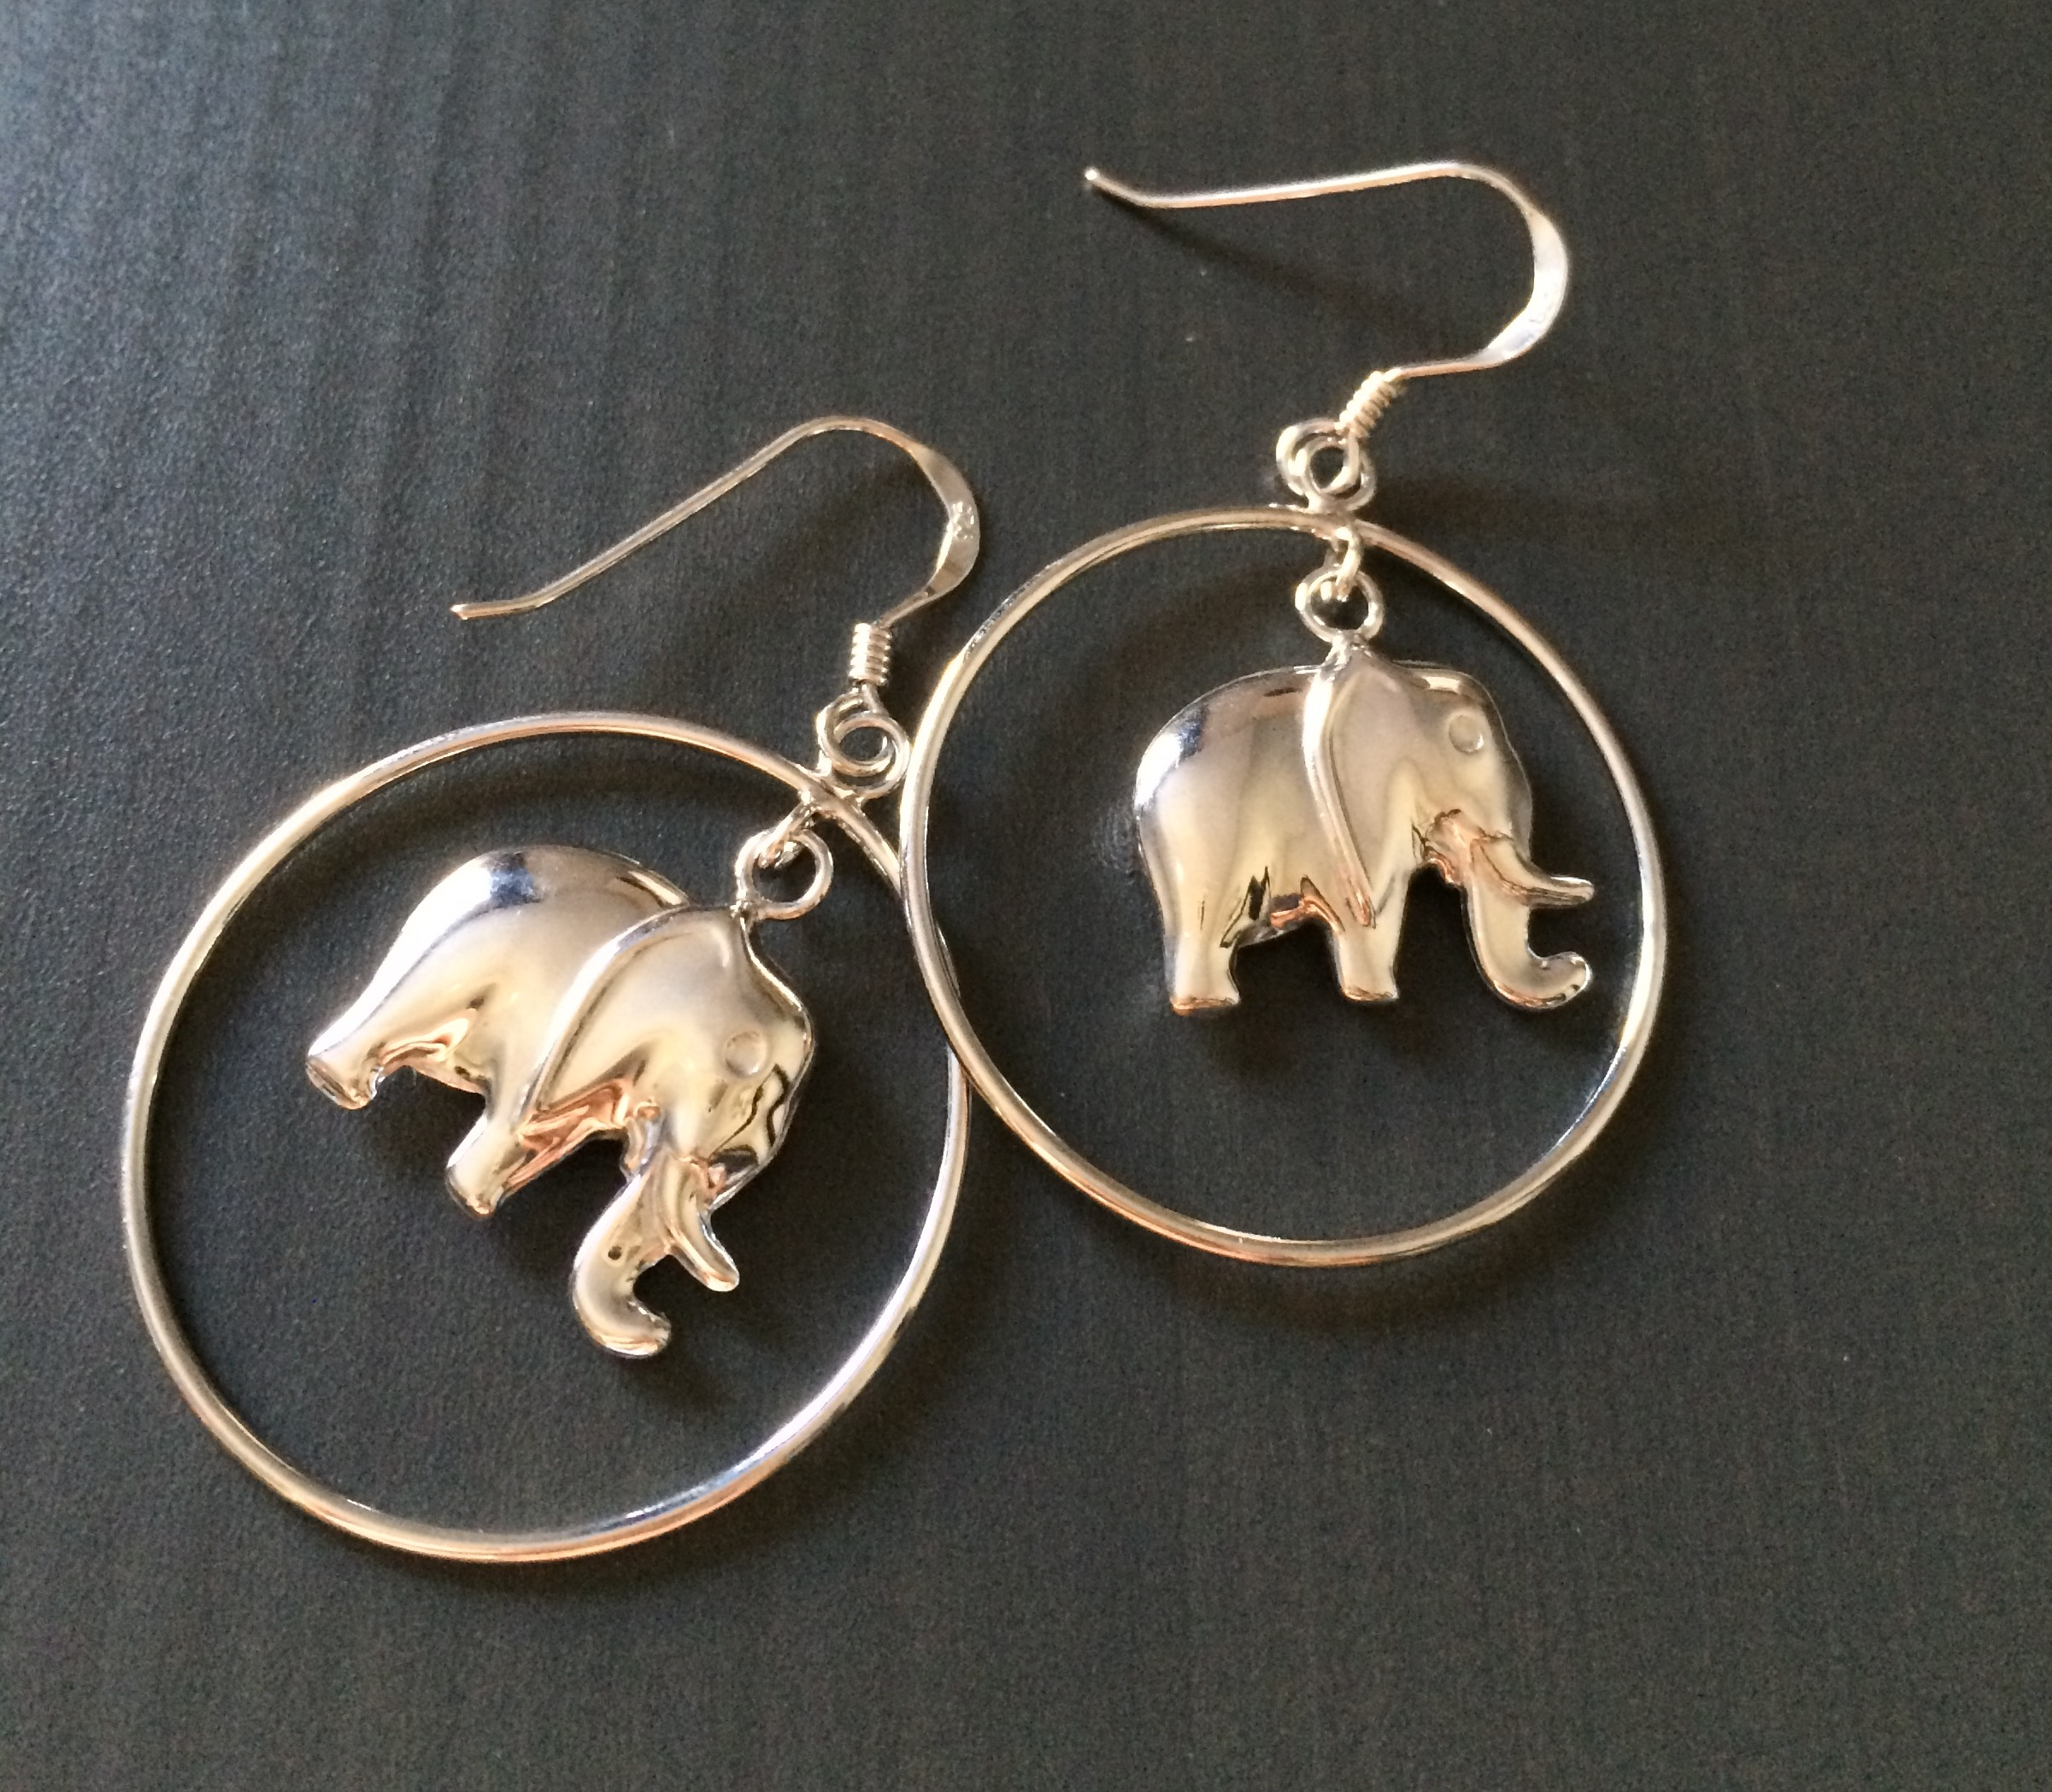 e earrings tinyelephant iyd enreverie tiny reverie en products elephant stud